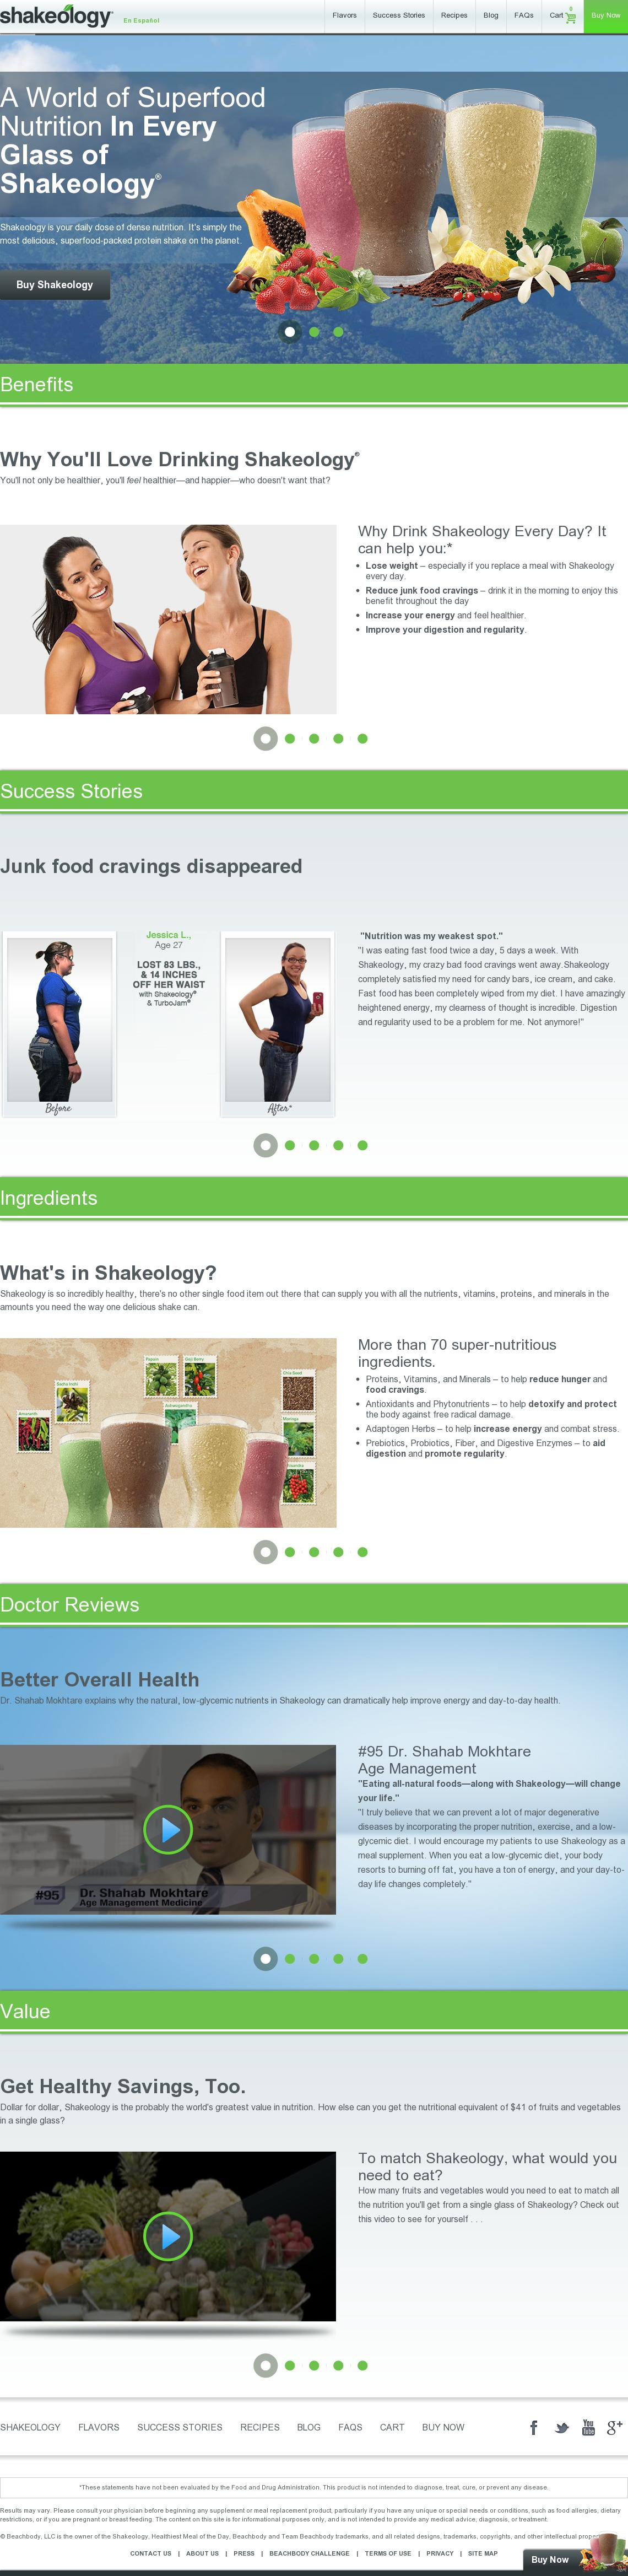 My Shakeology keeps me going! It not only tastes great, its one of my healthiest meals for myself and my son. It helps me lose weight, grow my nails, my hair is also healthy. #weightloss #fitness http://www.shakeology.com/cherylcadams